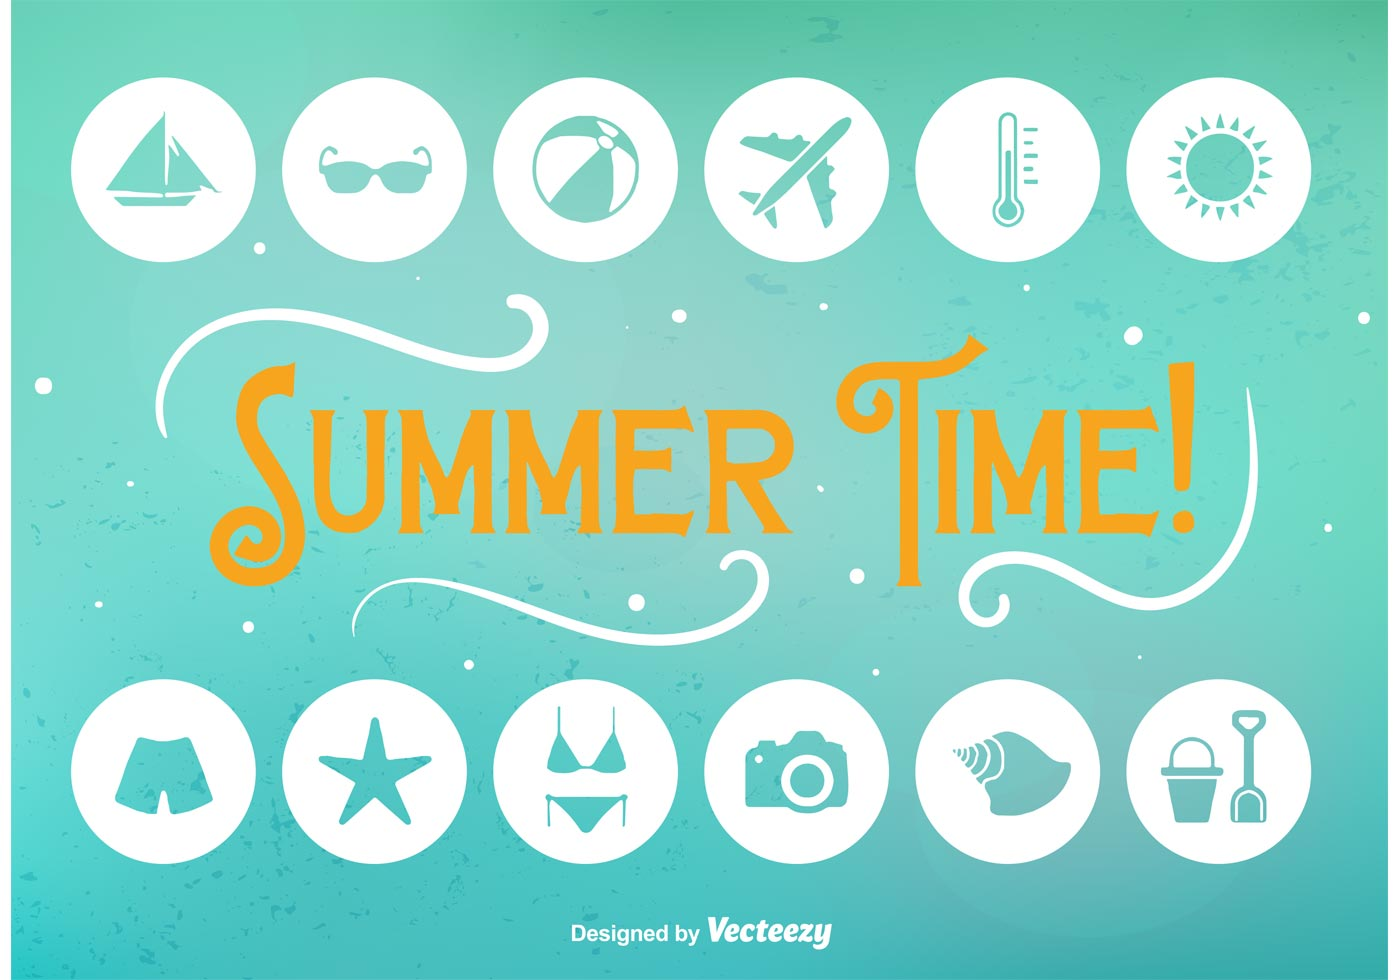 Cute Palm Tree Wallpaper Summer Time Flat Icons Download Free Vector Art Stock